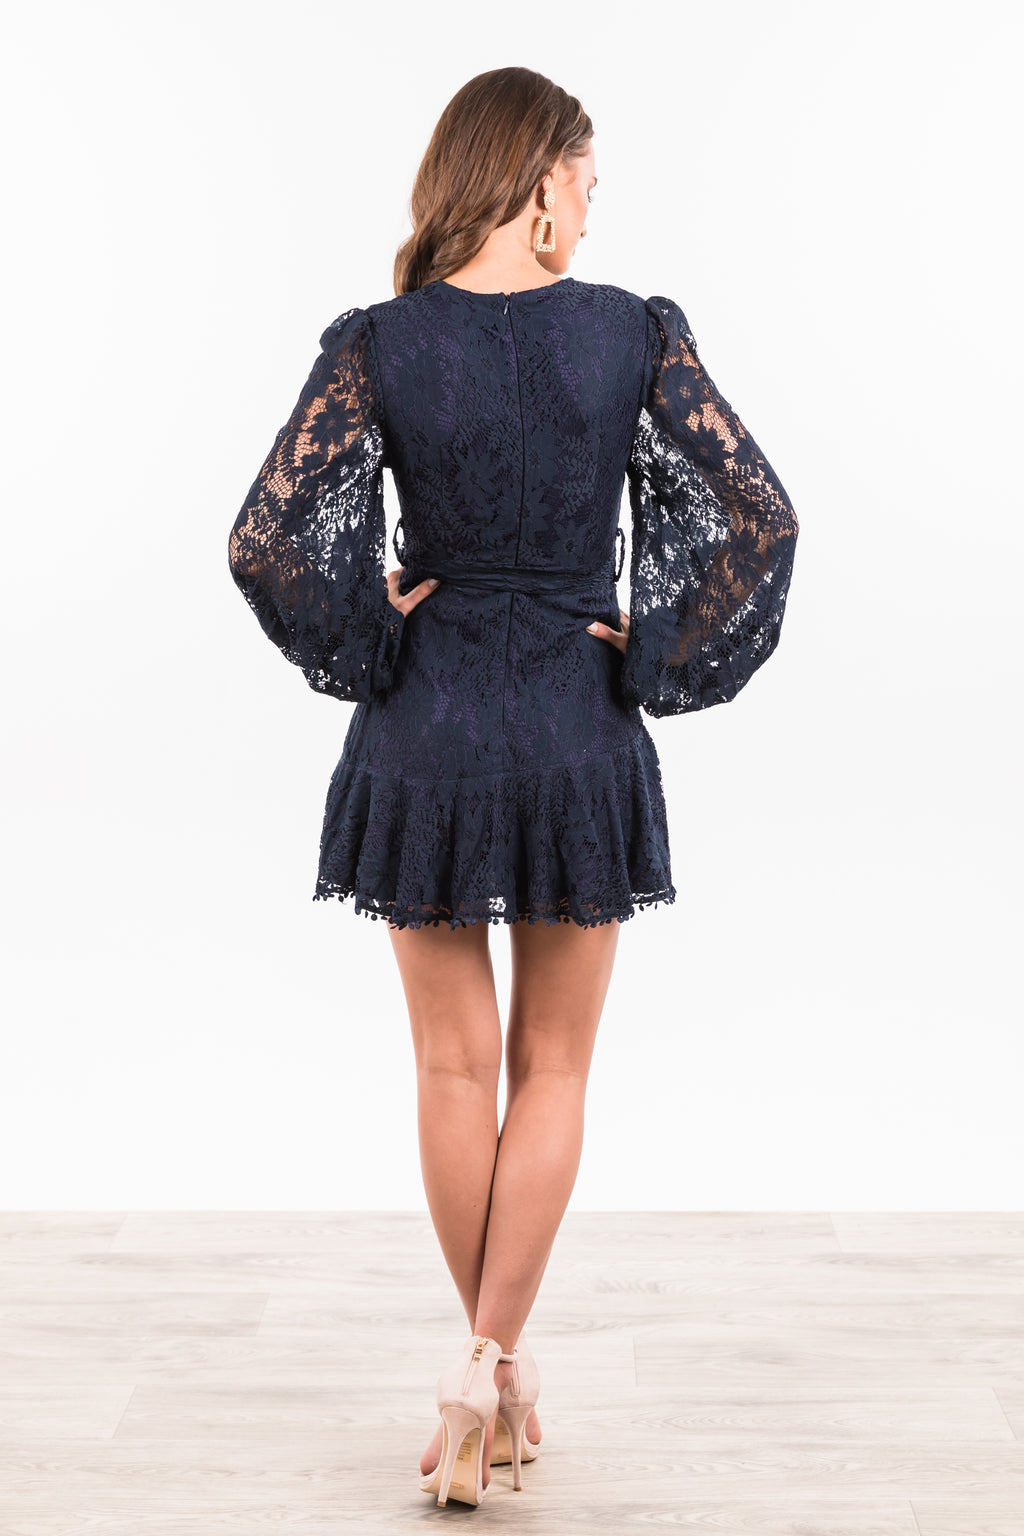 Kendra Dress - Navy